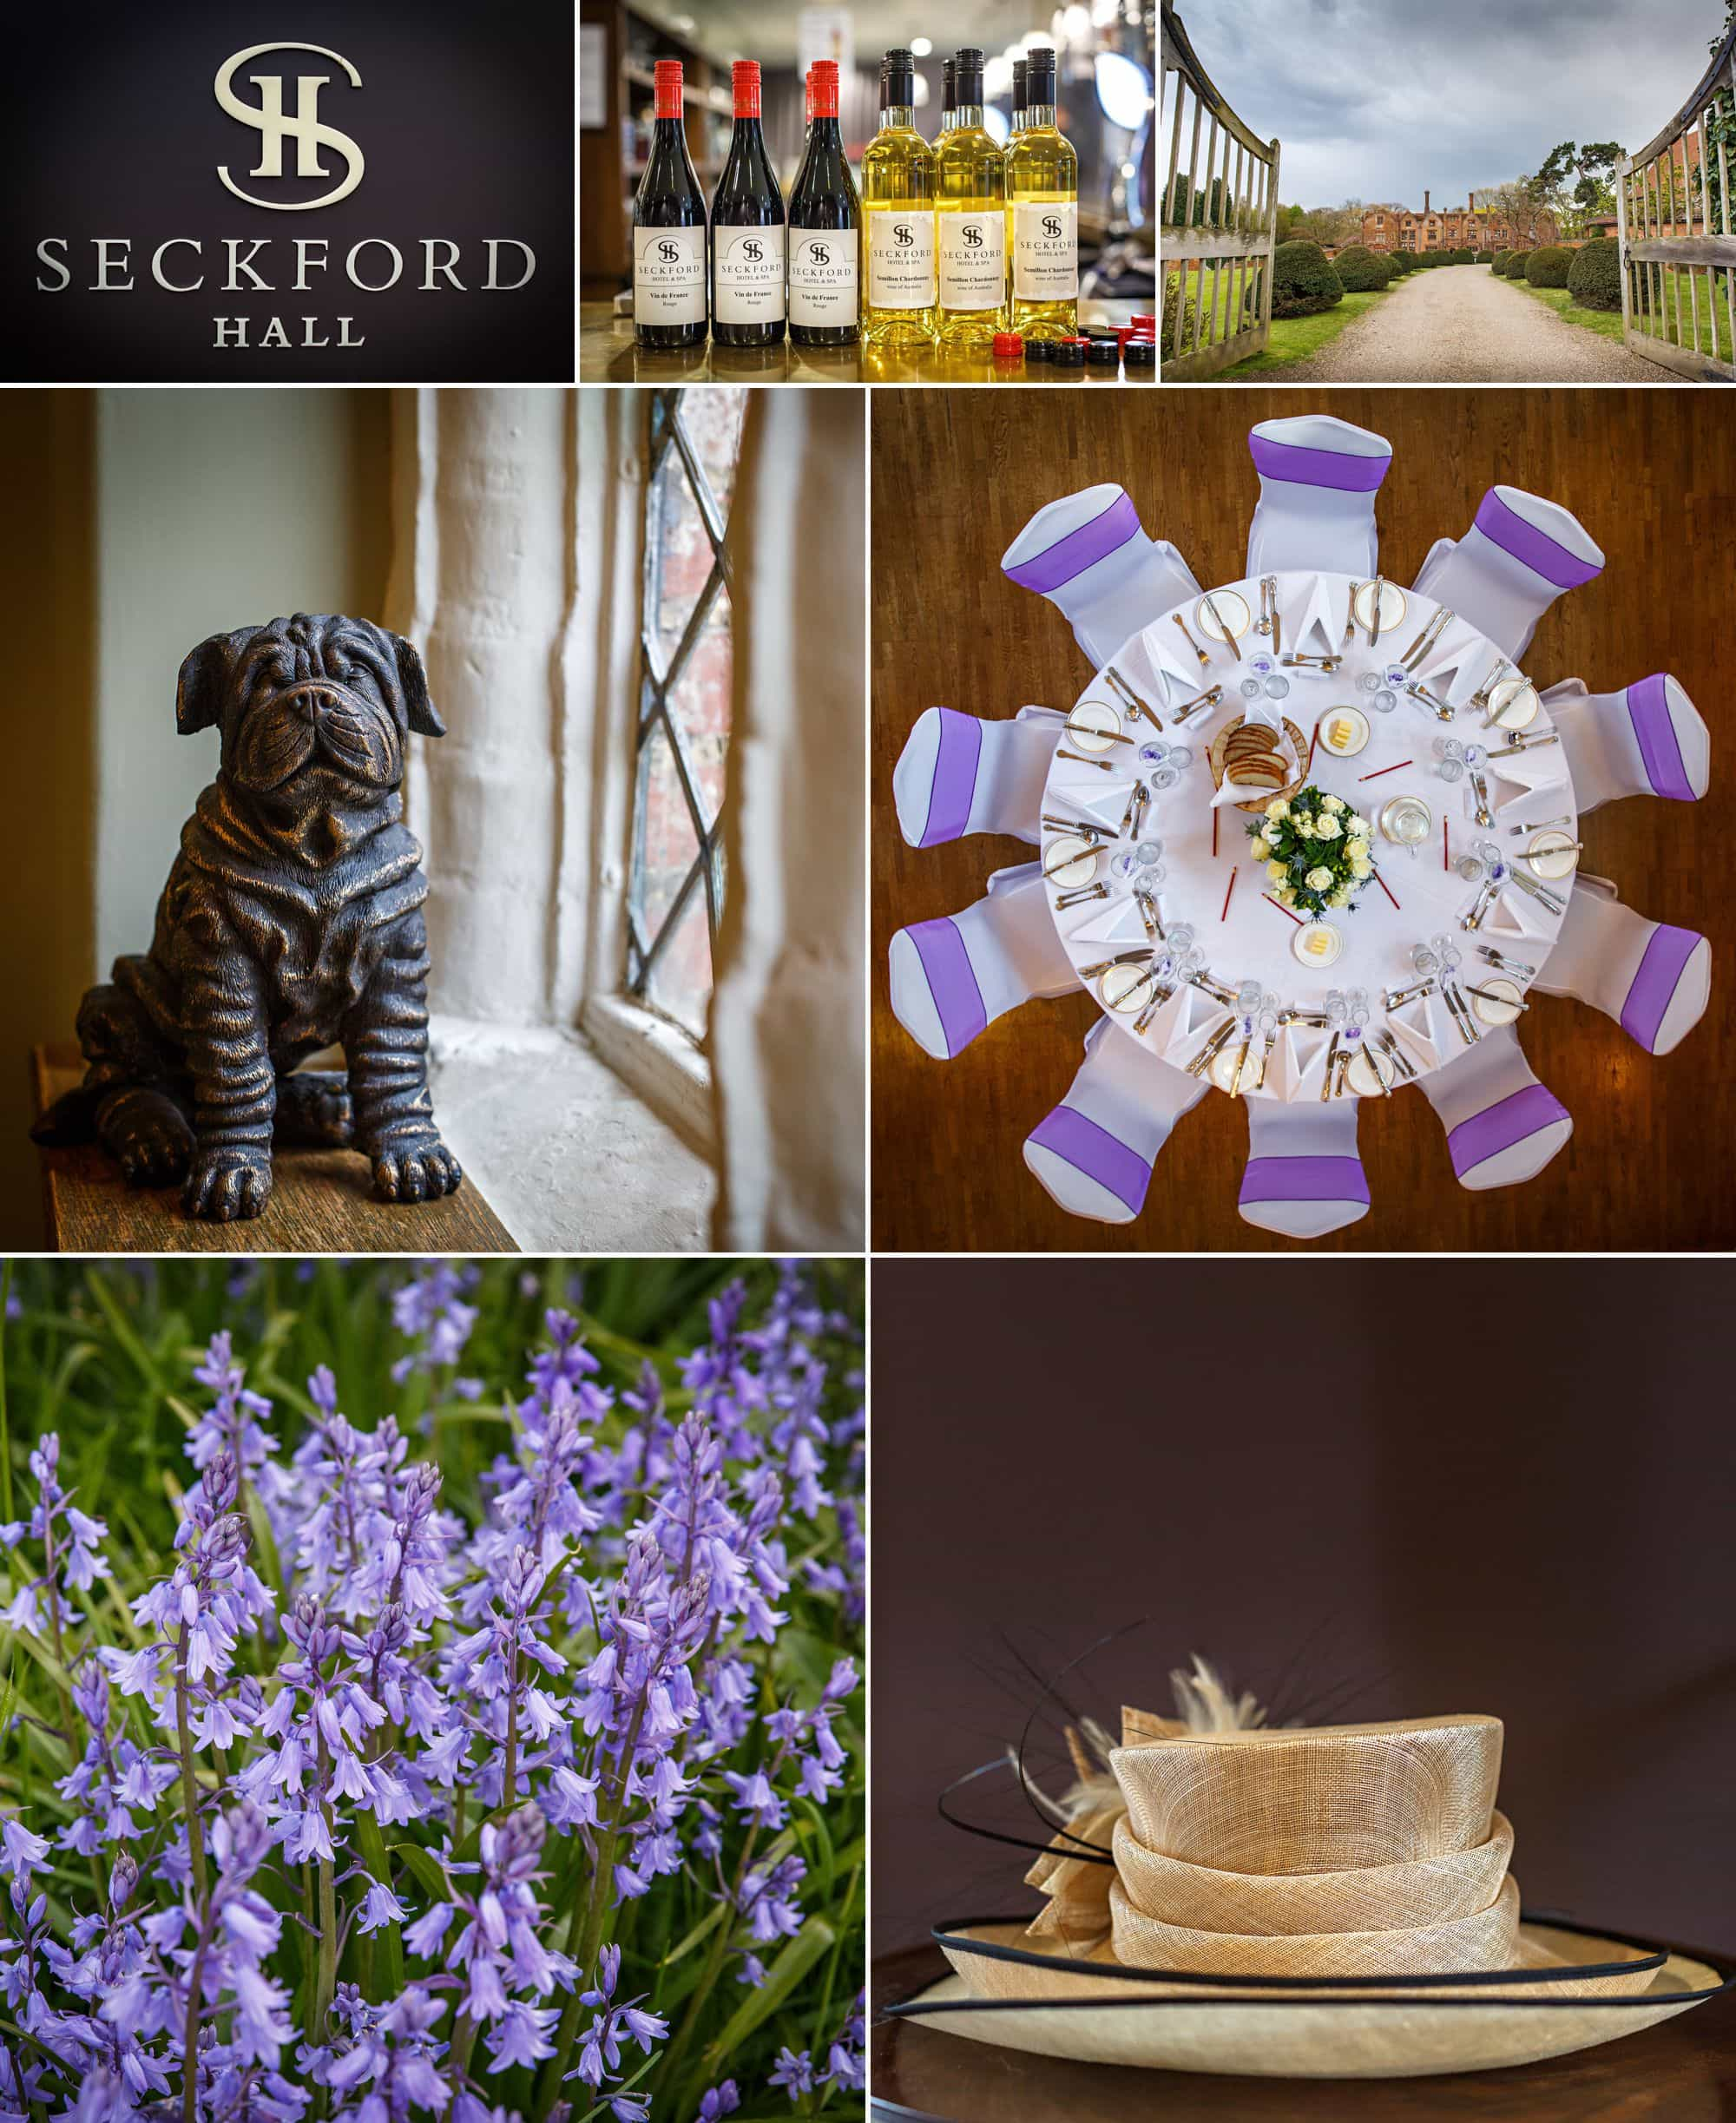 seckford-hall-wedding-photo-008